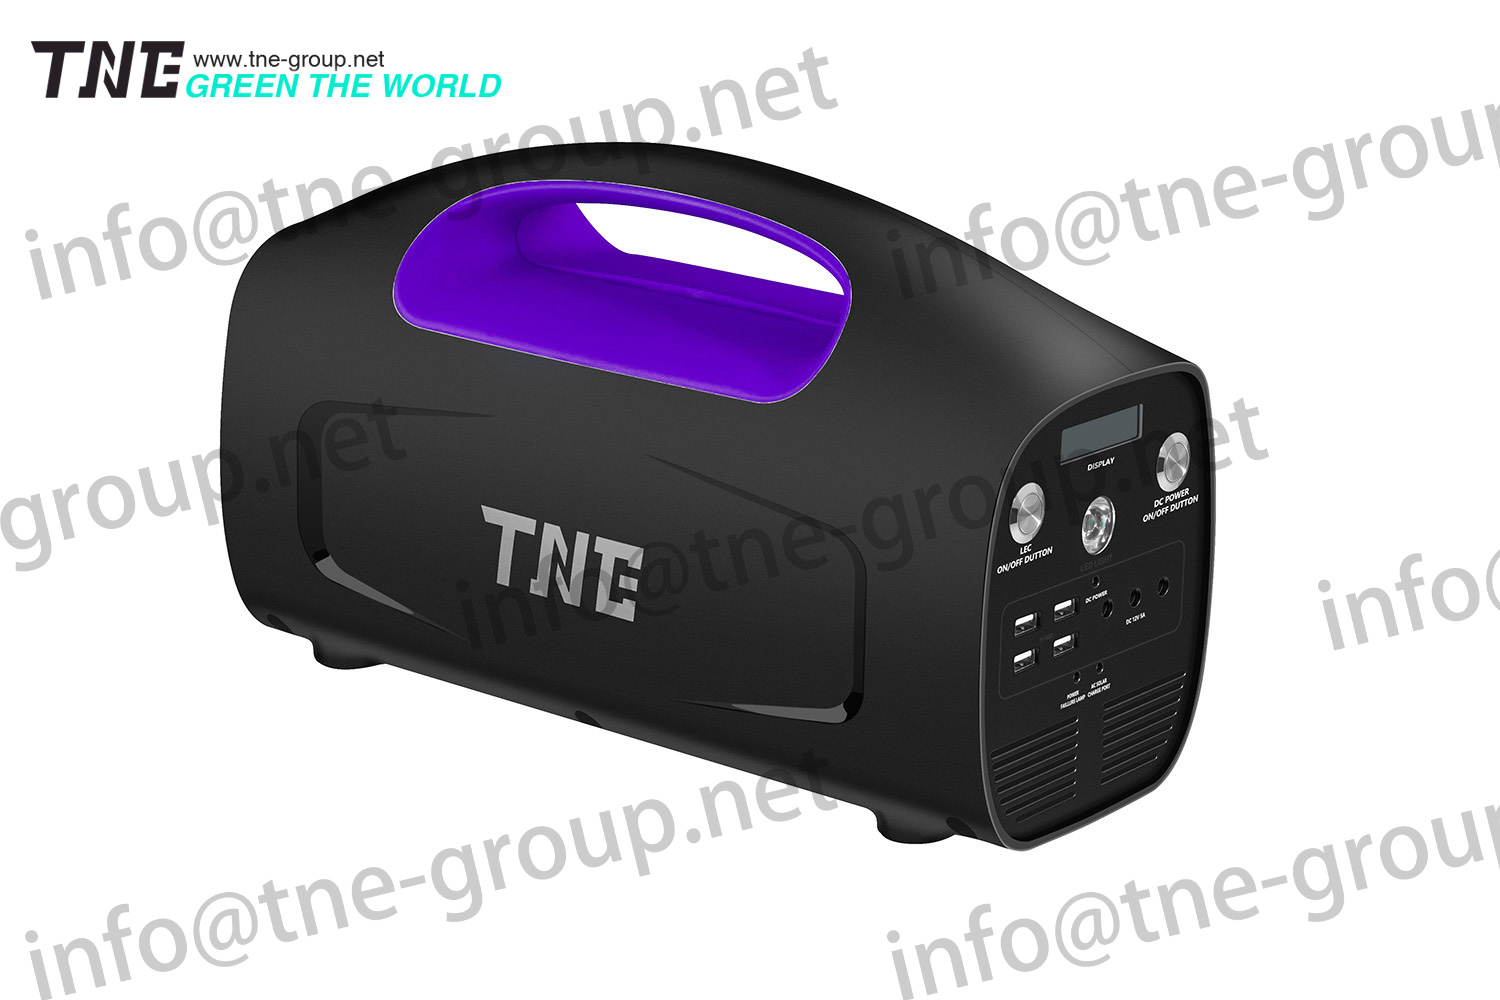 TNE outdoor Offline 500VA Power Portable ups for travel